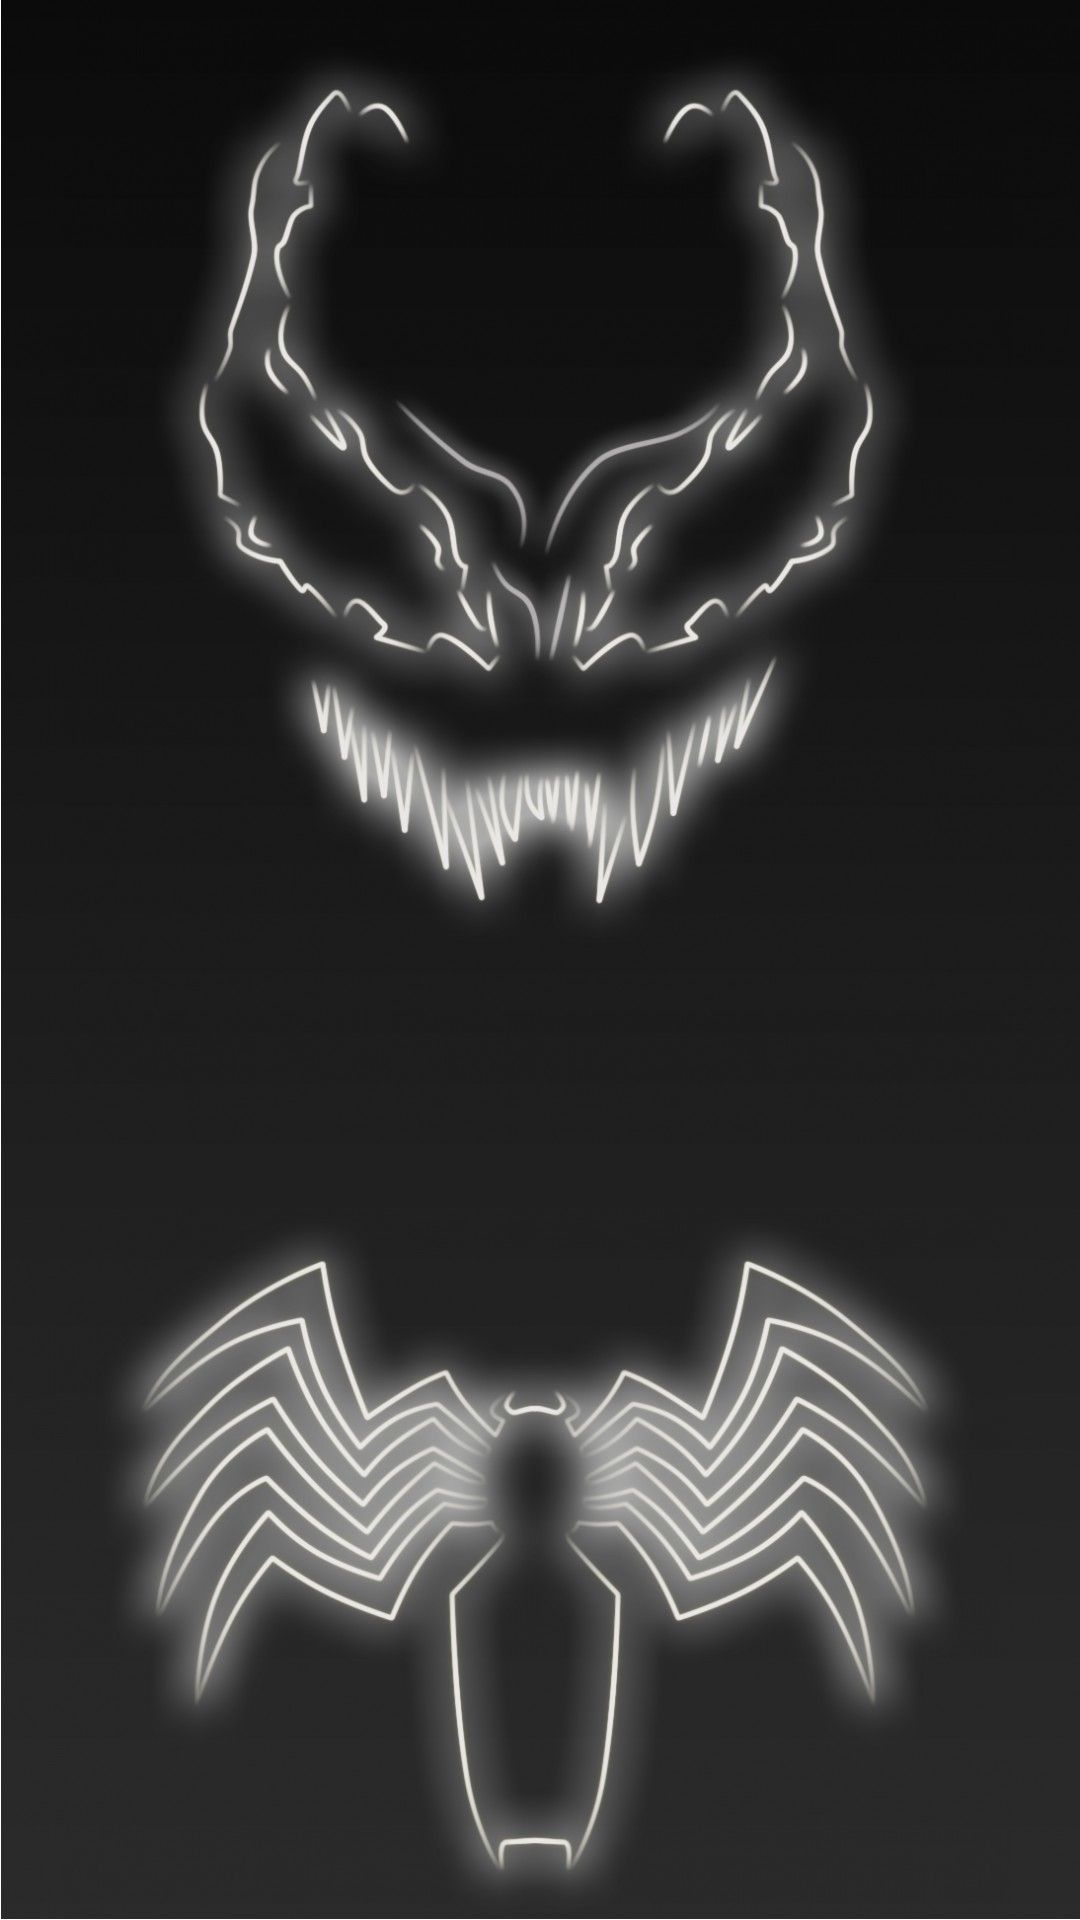 Neon Light Venom 1080 X 1920 Wallpapers Disponible En Téléchargement